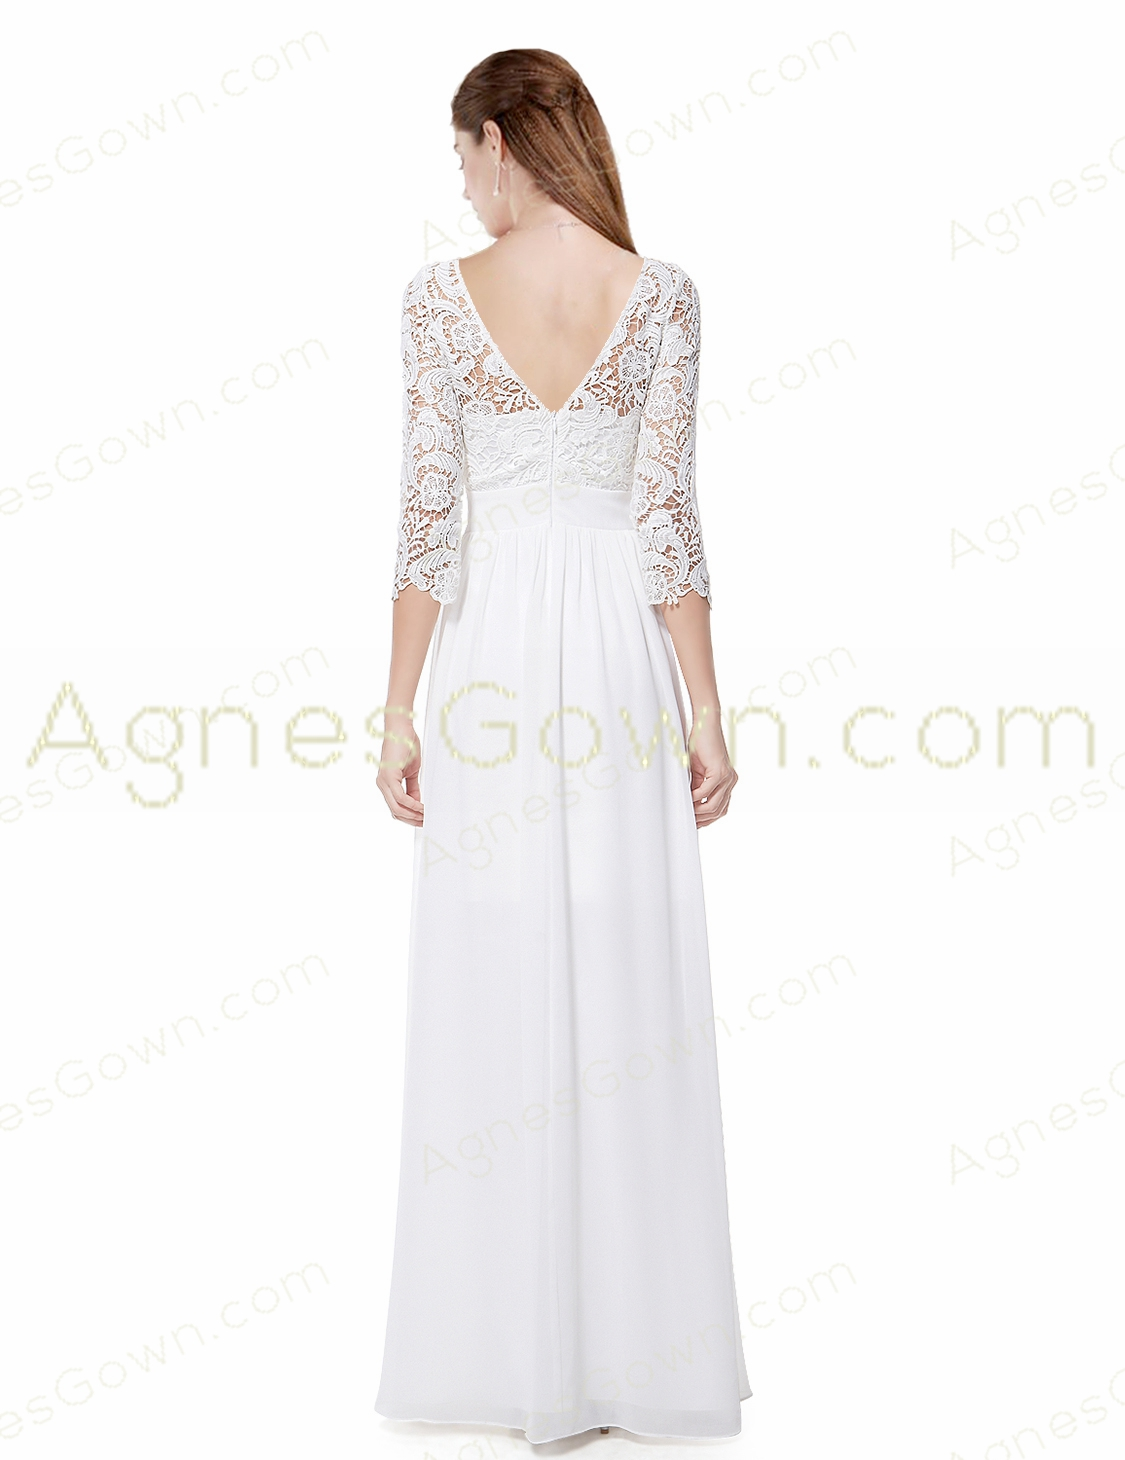 3/4 Sleeves Beach Wedding Dress With Lace